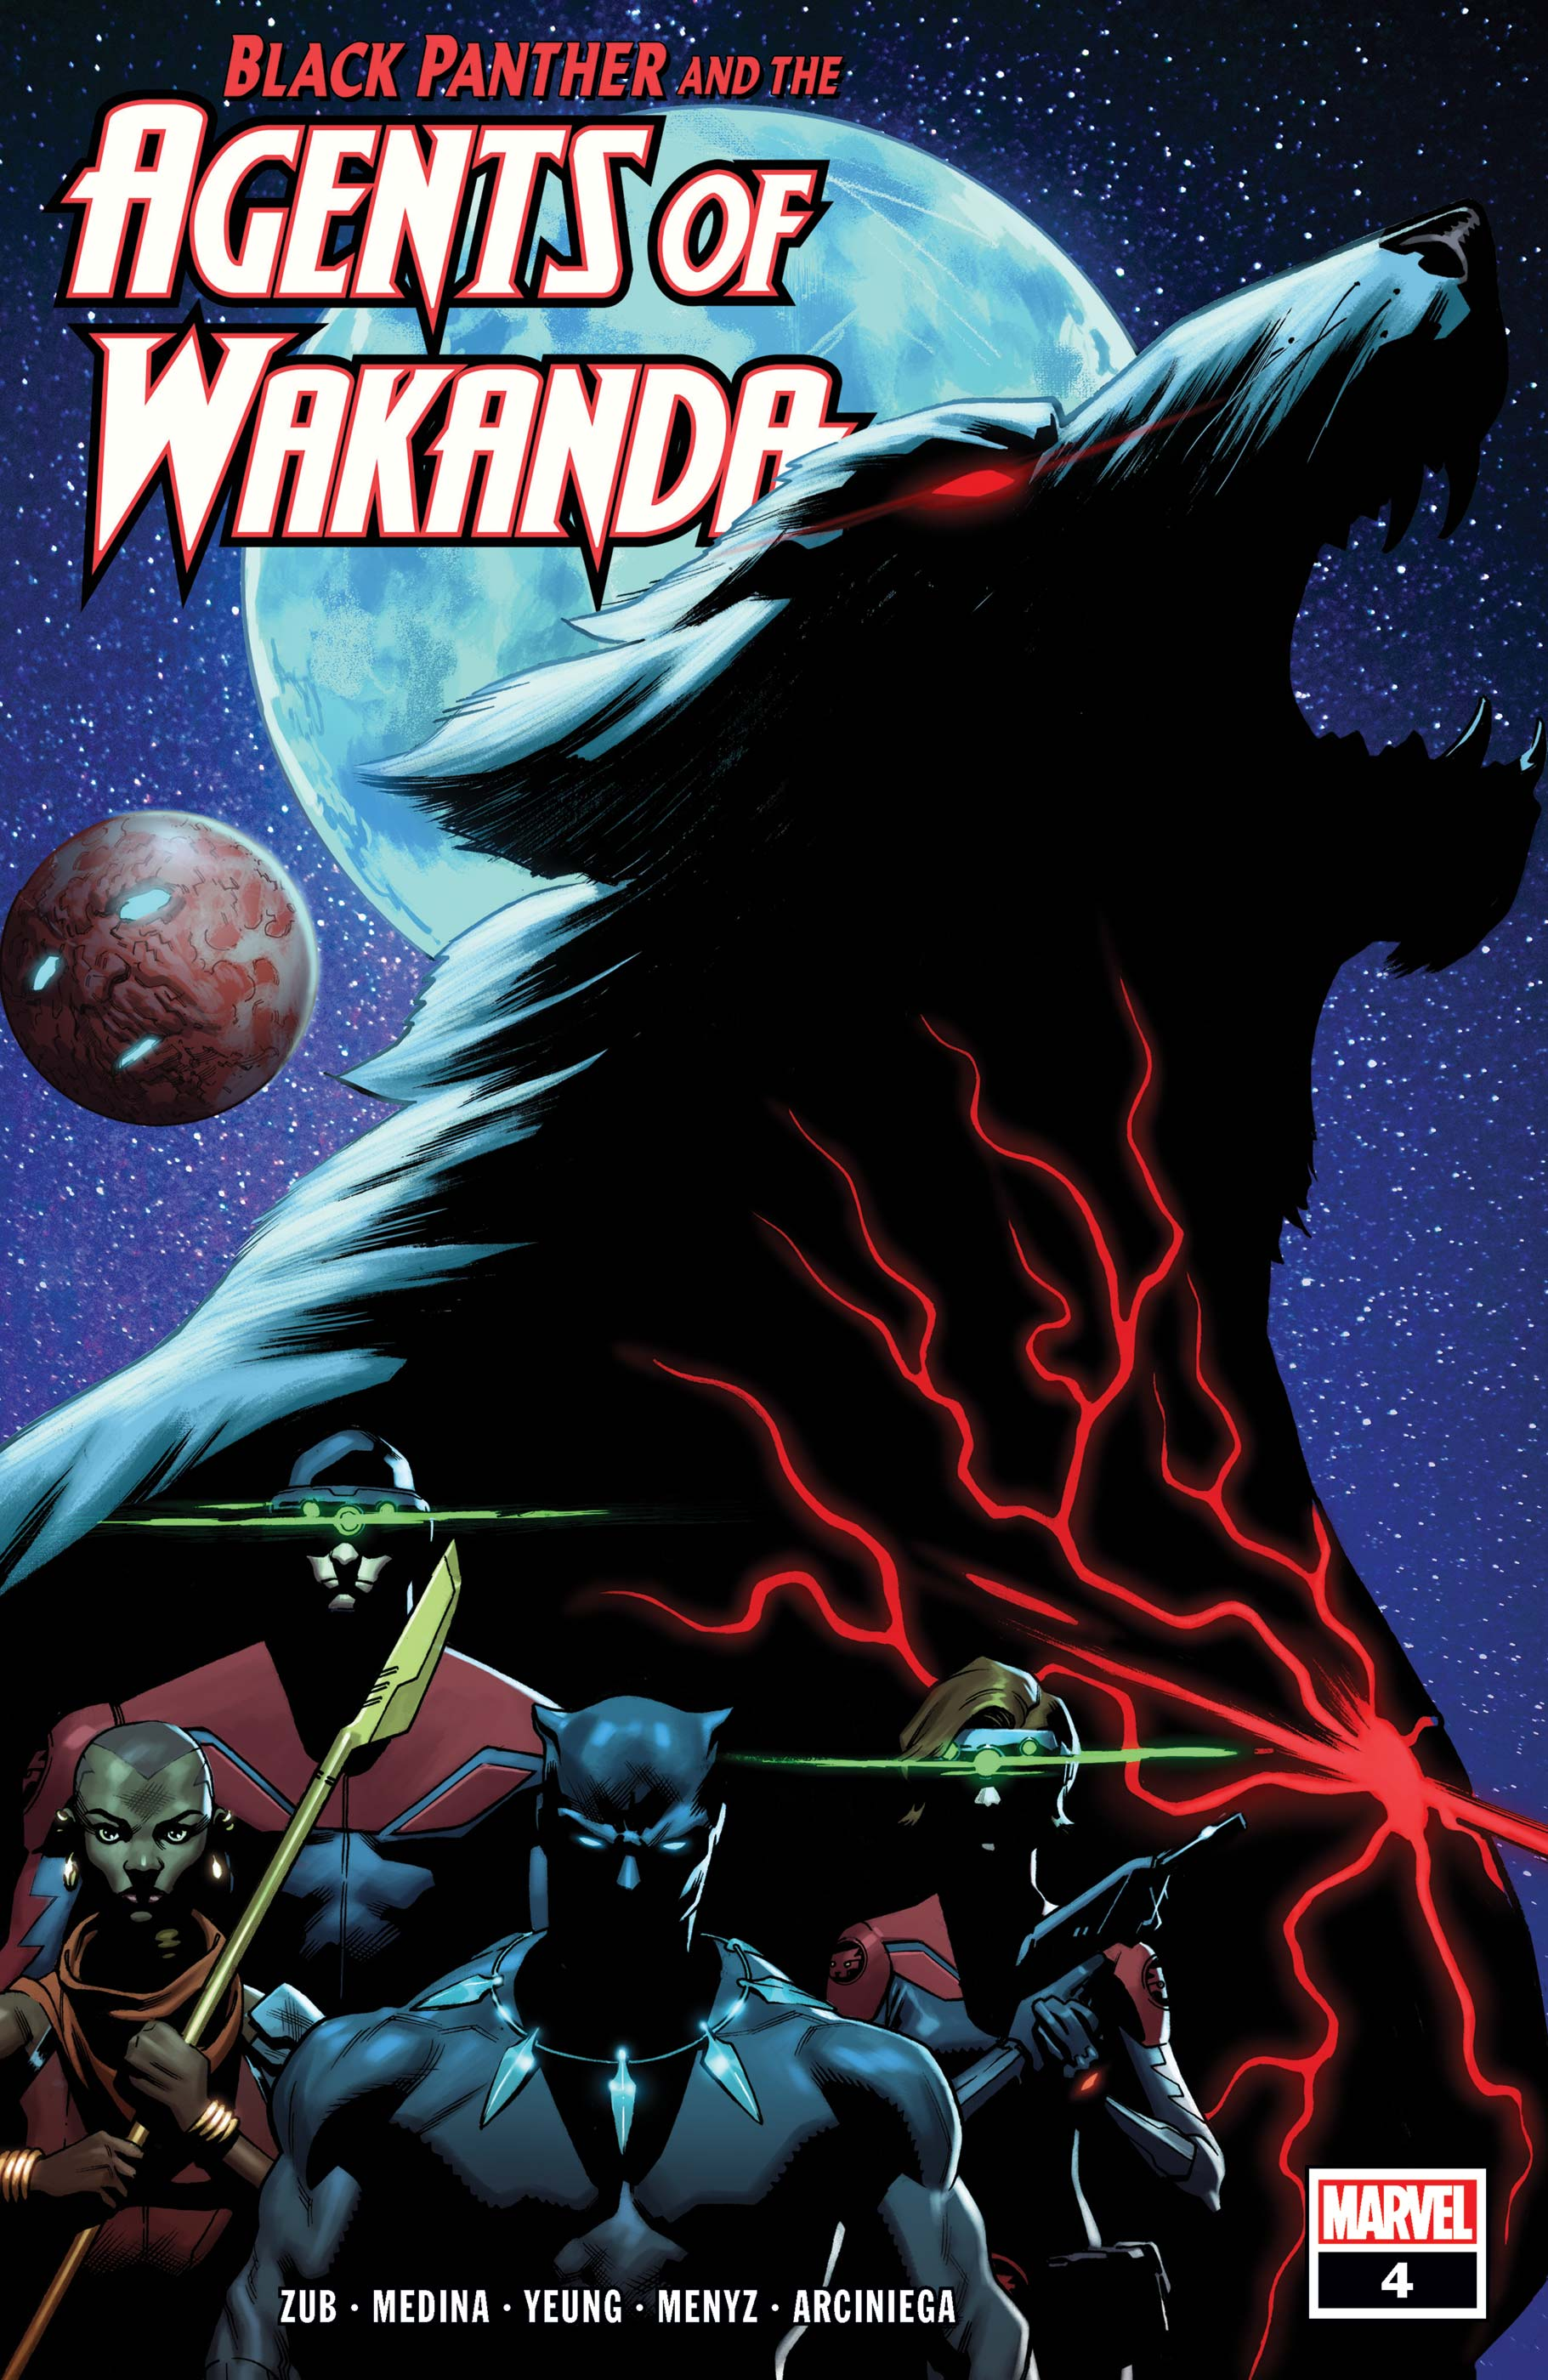 Black Panther and the Agents of Wakanda (2019) #4